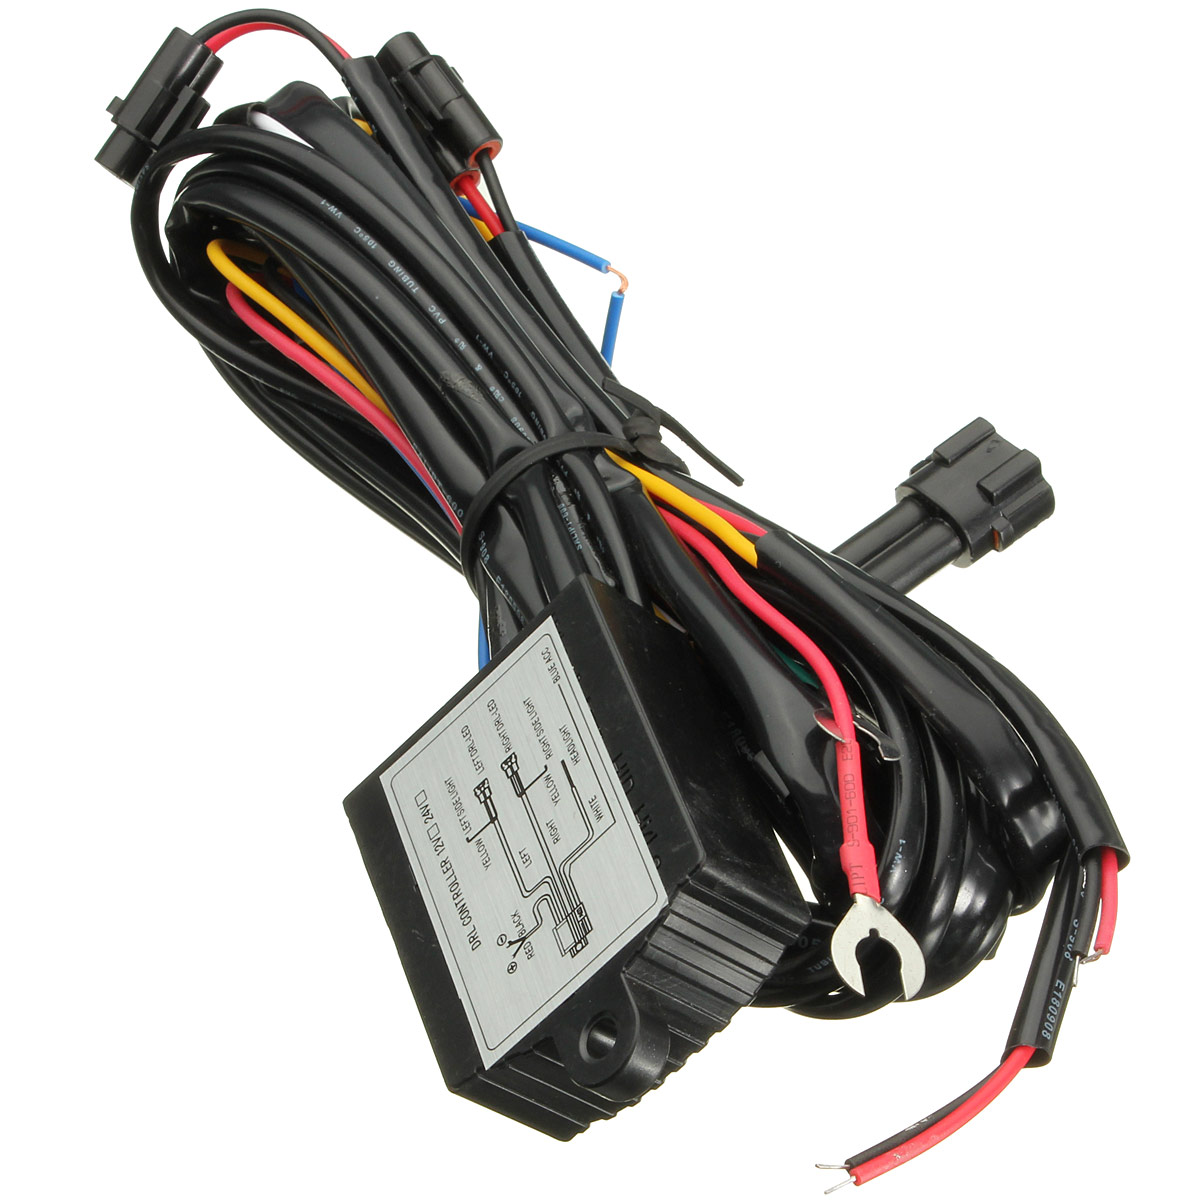 car drl dim control switch wiring harness daytime running light dimmer  dimming relay 12v universal vehicle auto truck suv van us - walmart com